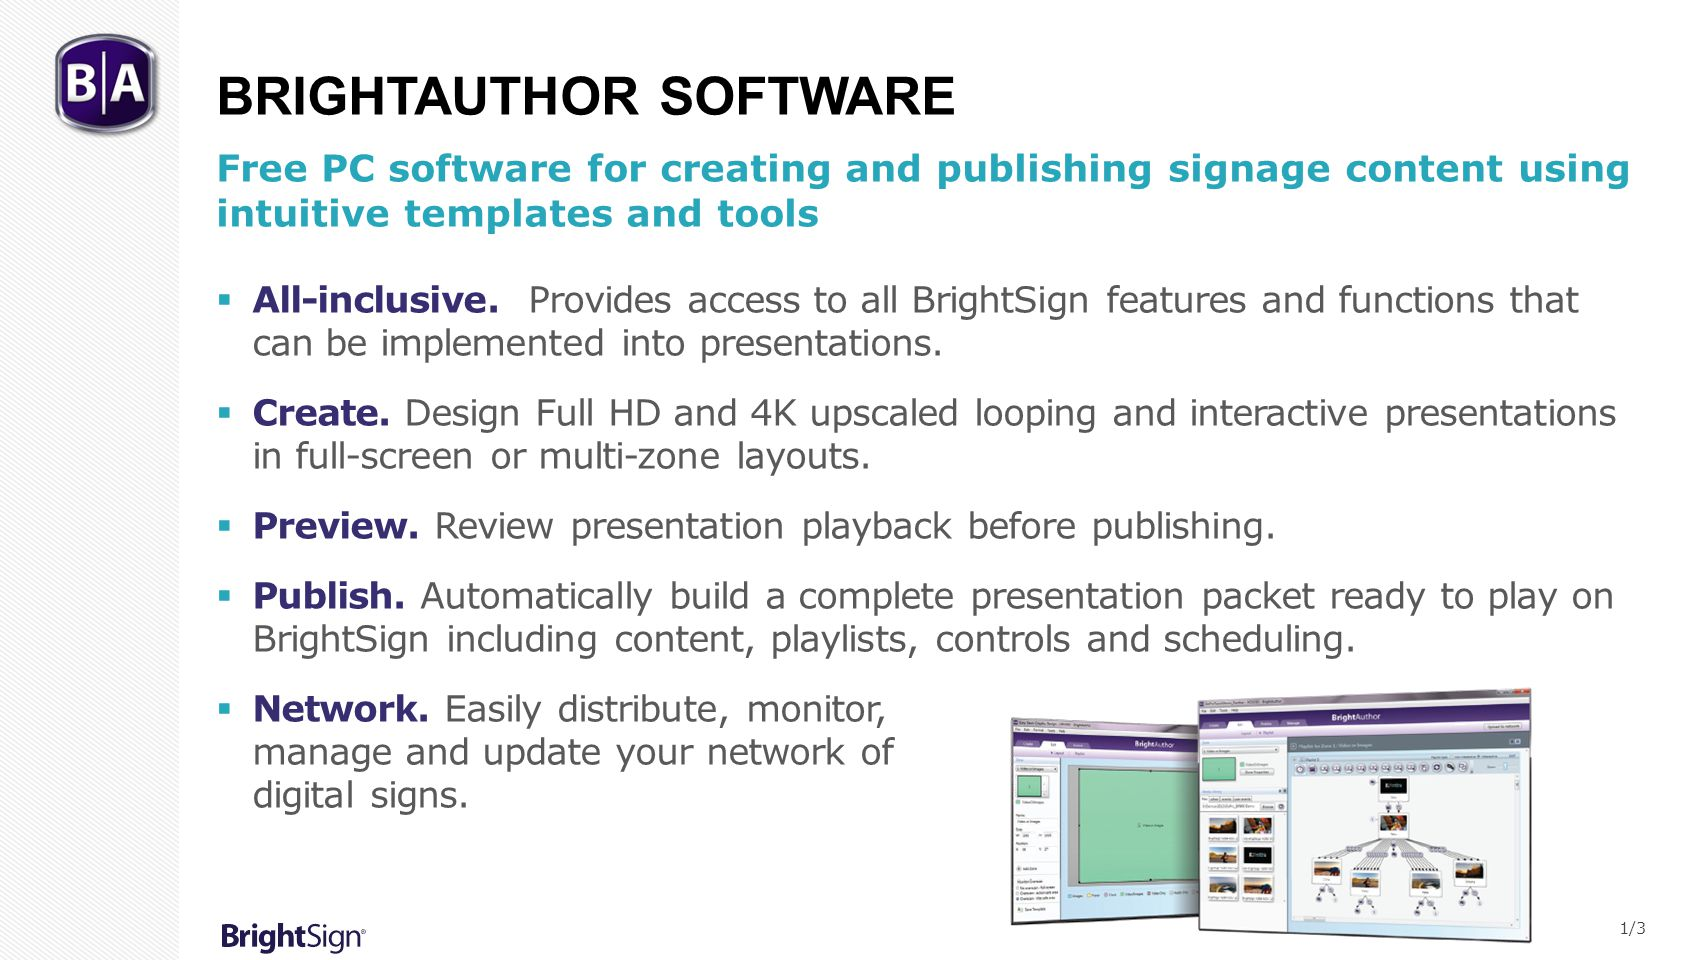 BrightAuthor Software